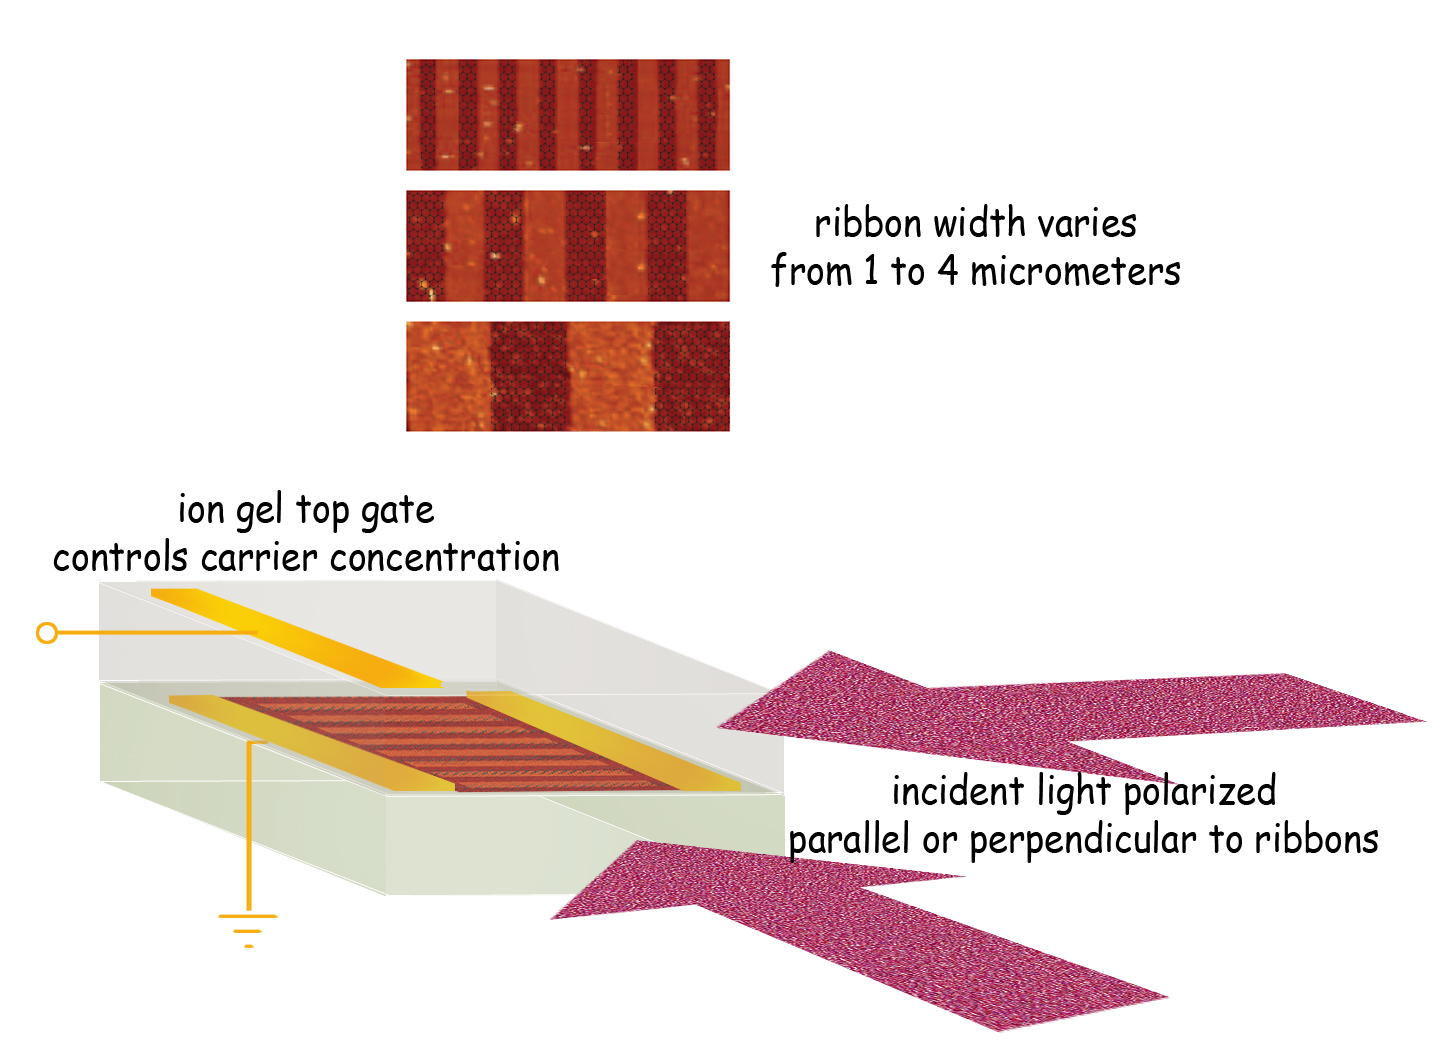 The graphene microribbon array can be tuned in three ways. Varying the width of the ribbons changes plasmon resonant frequency and absorbs corresponding frequencies of terahertz light. Plasmon response is much stronger when there is a dense concentration of charge carriers (electrons or holes), controlled by varying the top gate voltage. Finally, light polarized perpendicularly to the ribbons is strongly absorbed at the plasmon resonant frequency, while parallel polarization shows no such response.